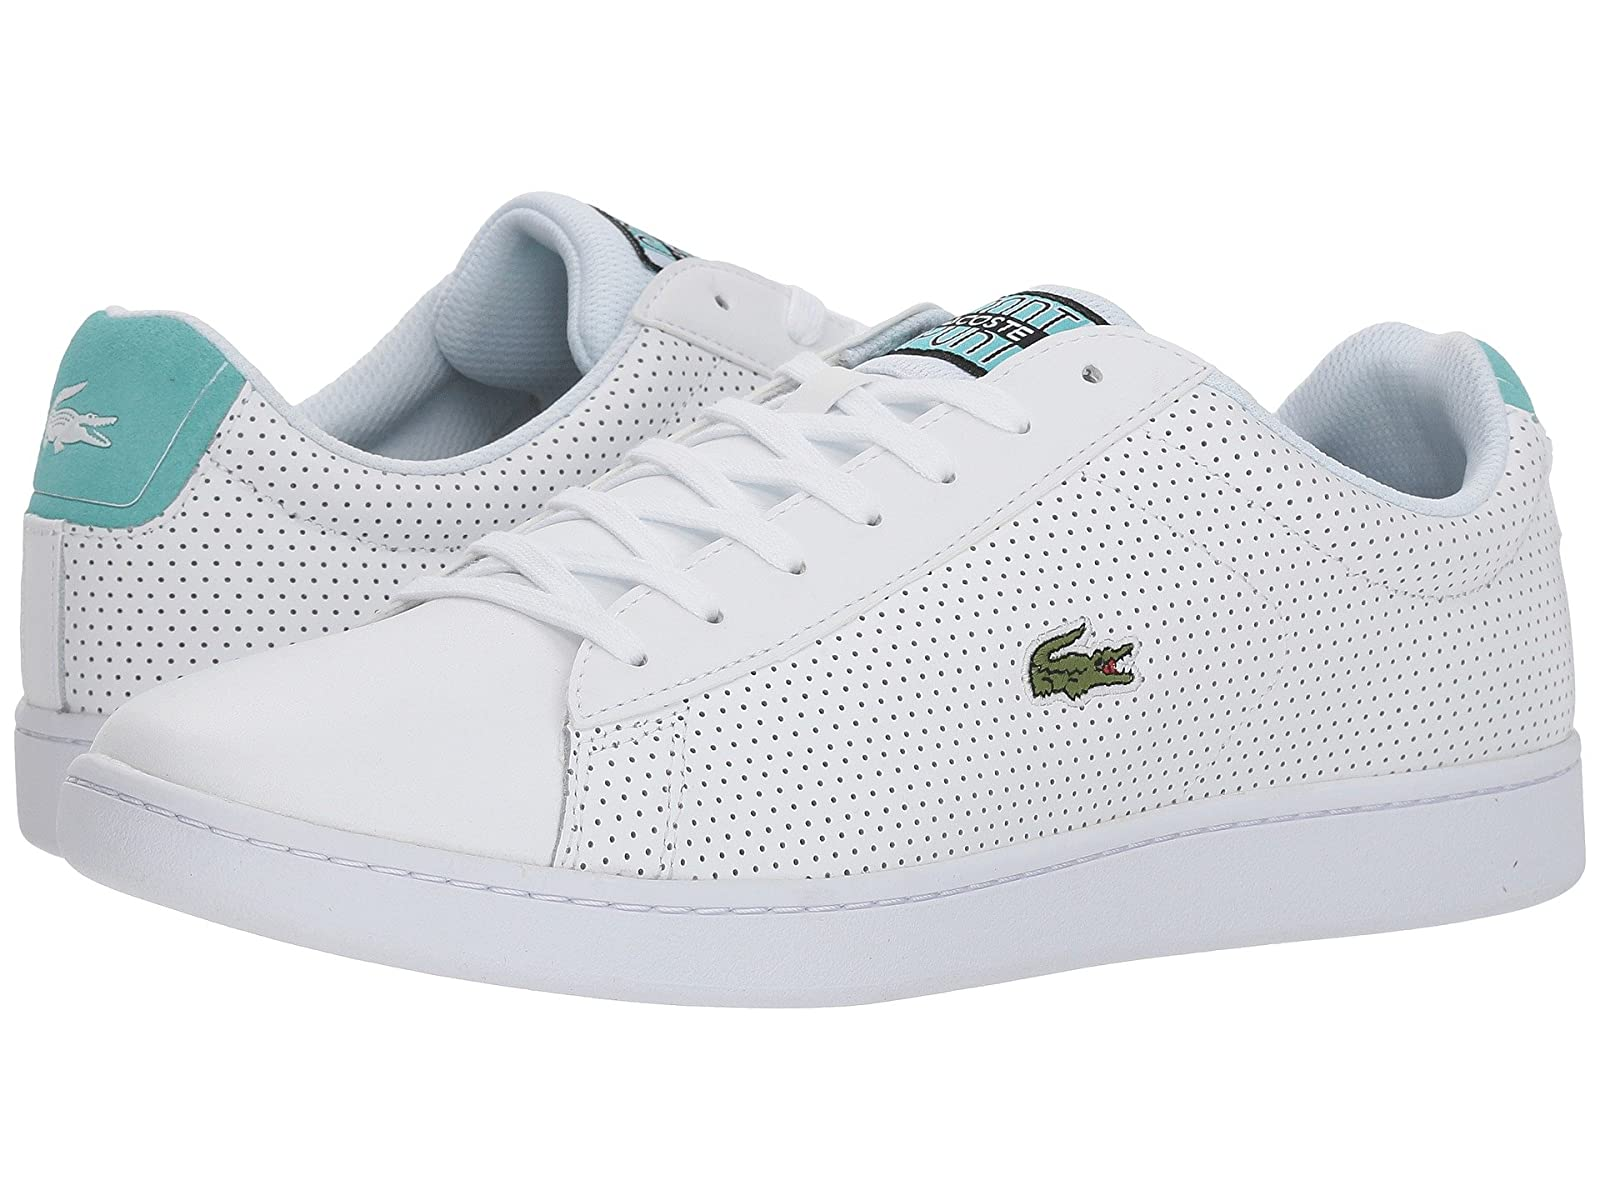 Lacoste Carnaby Evo 218 2Atmospheric grades have affordable shoes